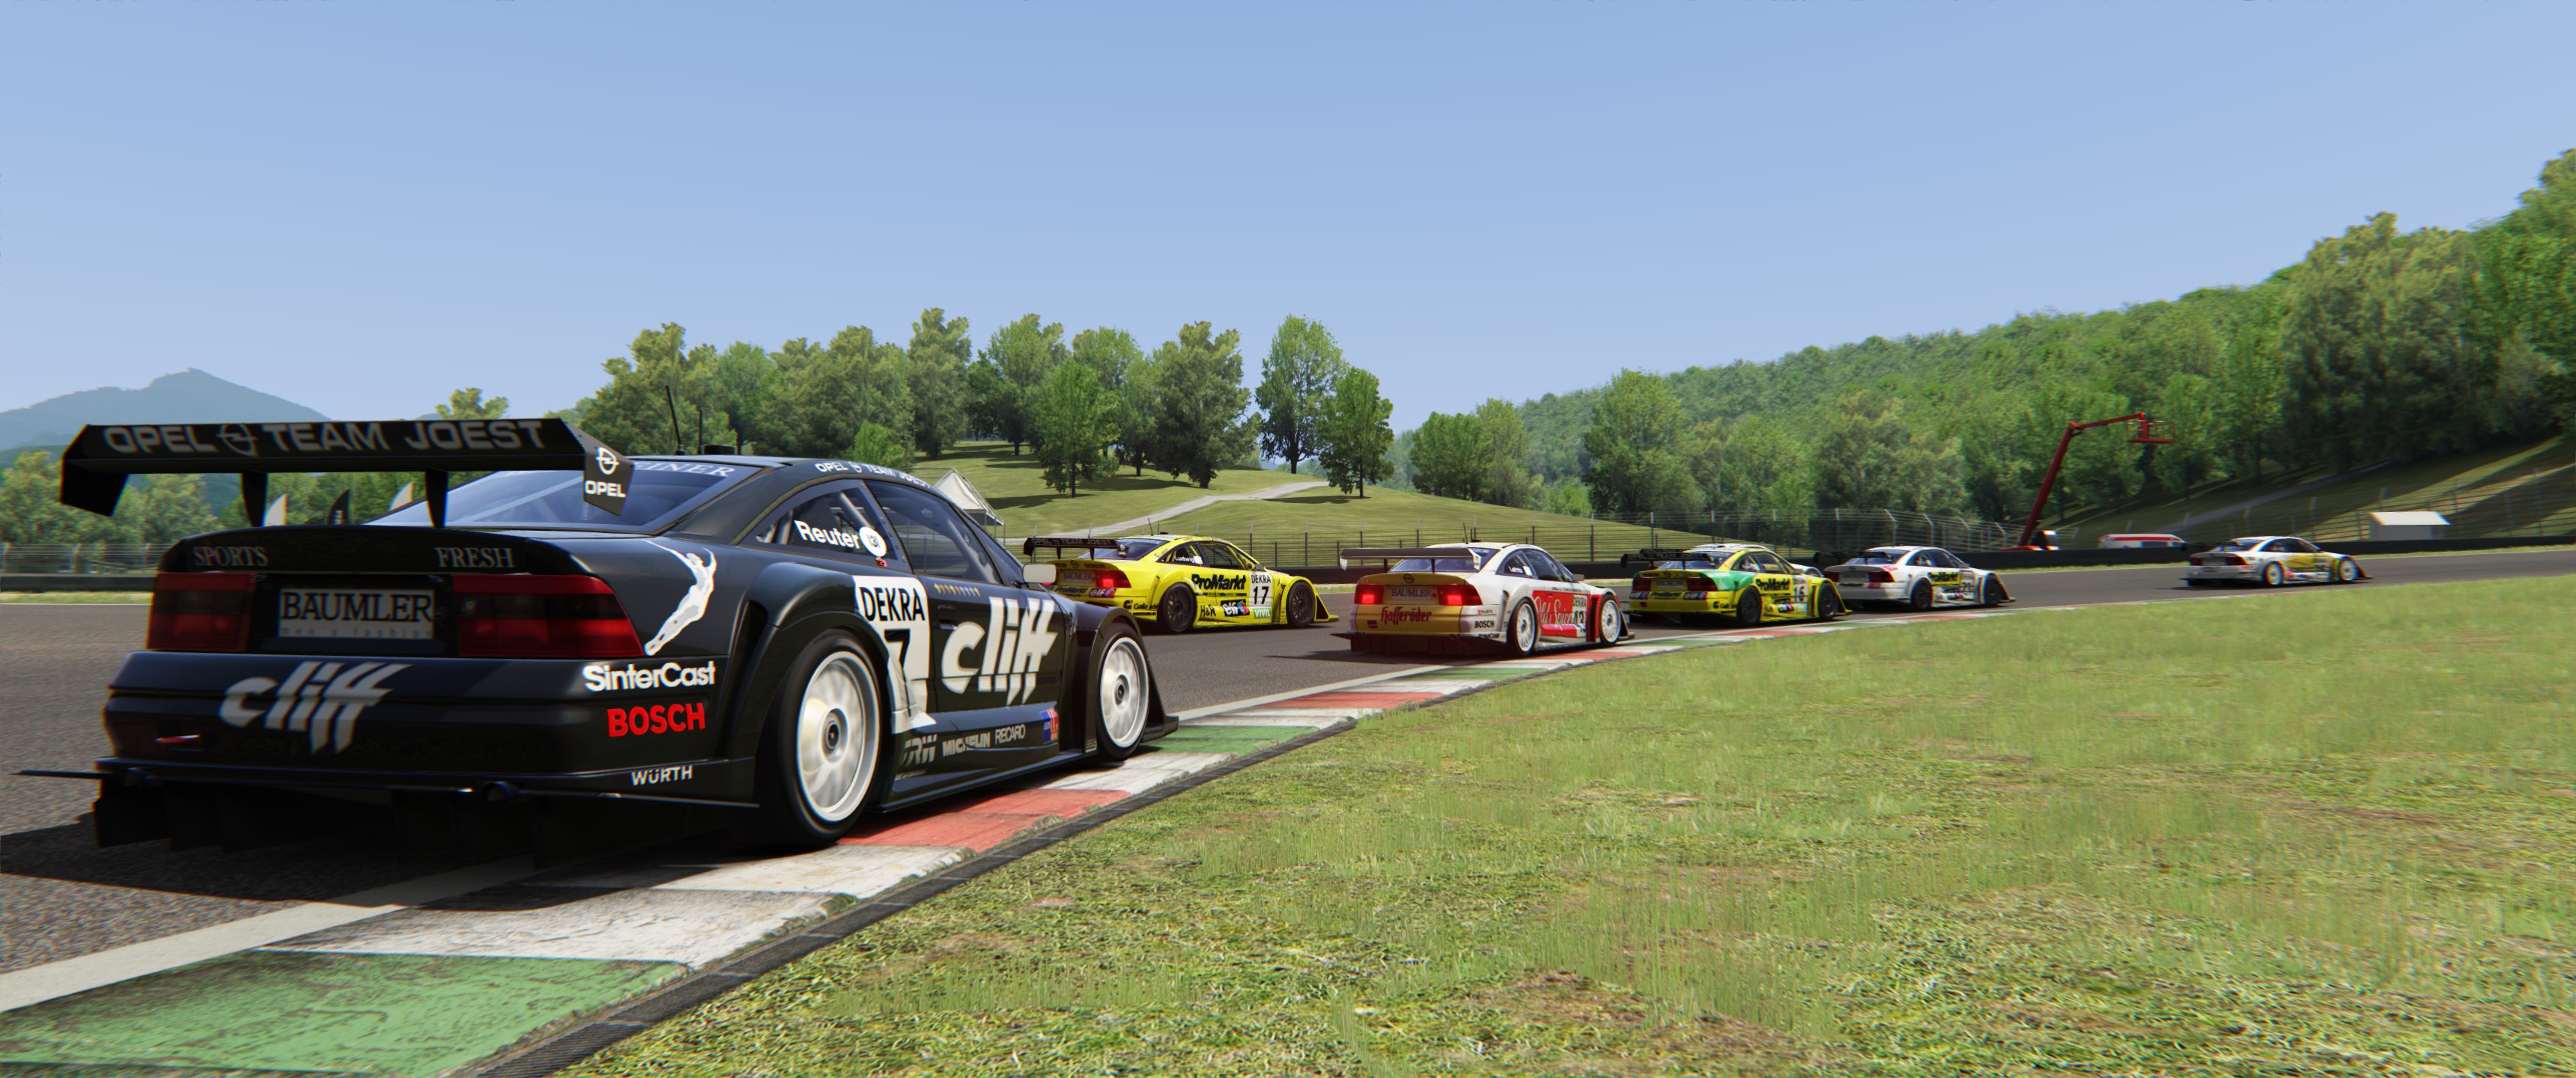 Screenshot_zs_calibra_dtm_mugello_18-7-117-0-7-20.jpg